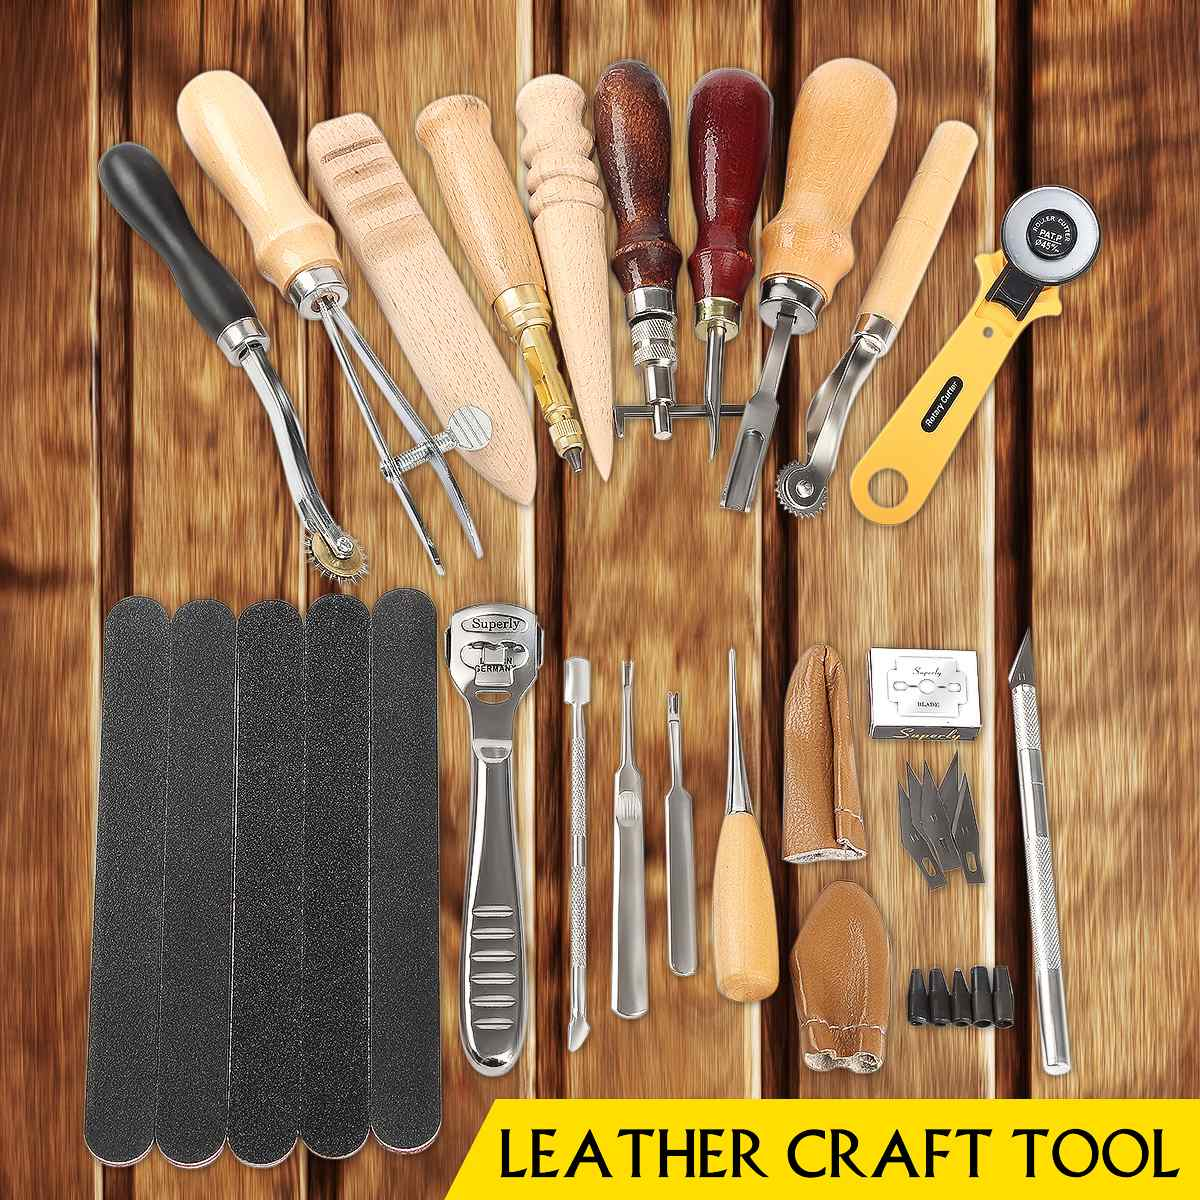 Tools : 60Pcs Professional Leather Craft Tools Kit for Hand Sewing Stitching Working Wheels Stamping Punch Tools Set